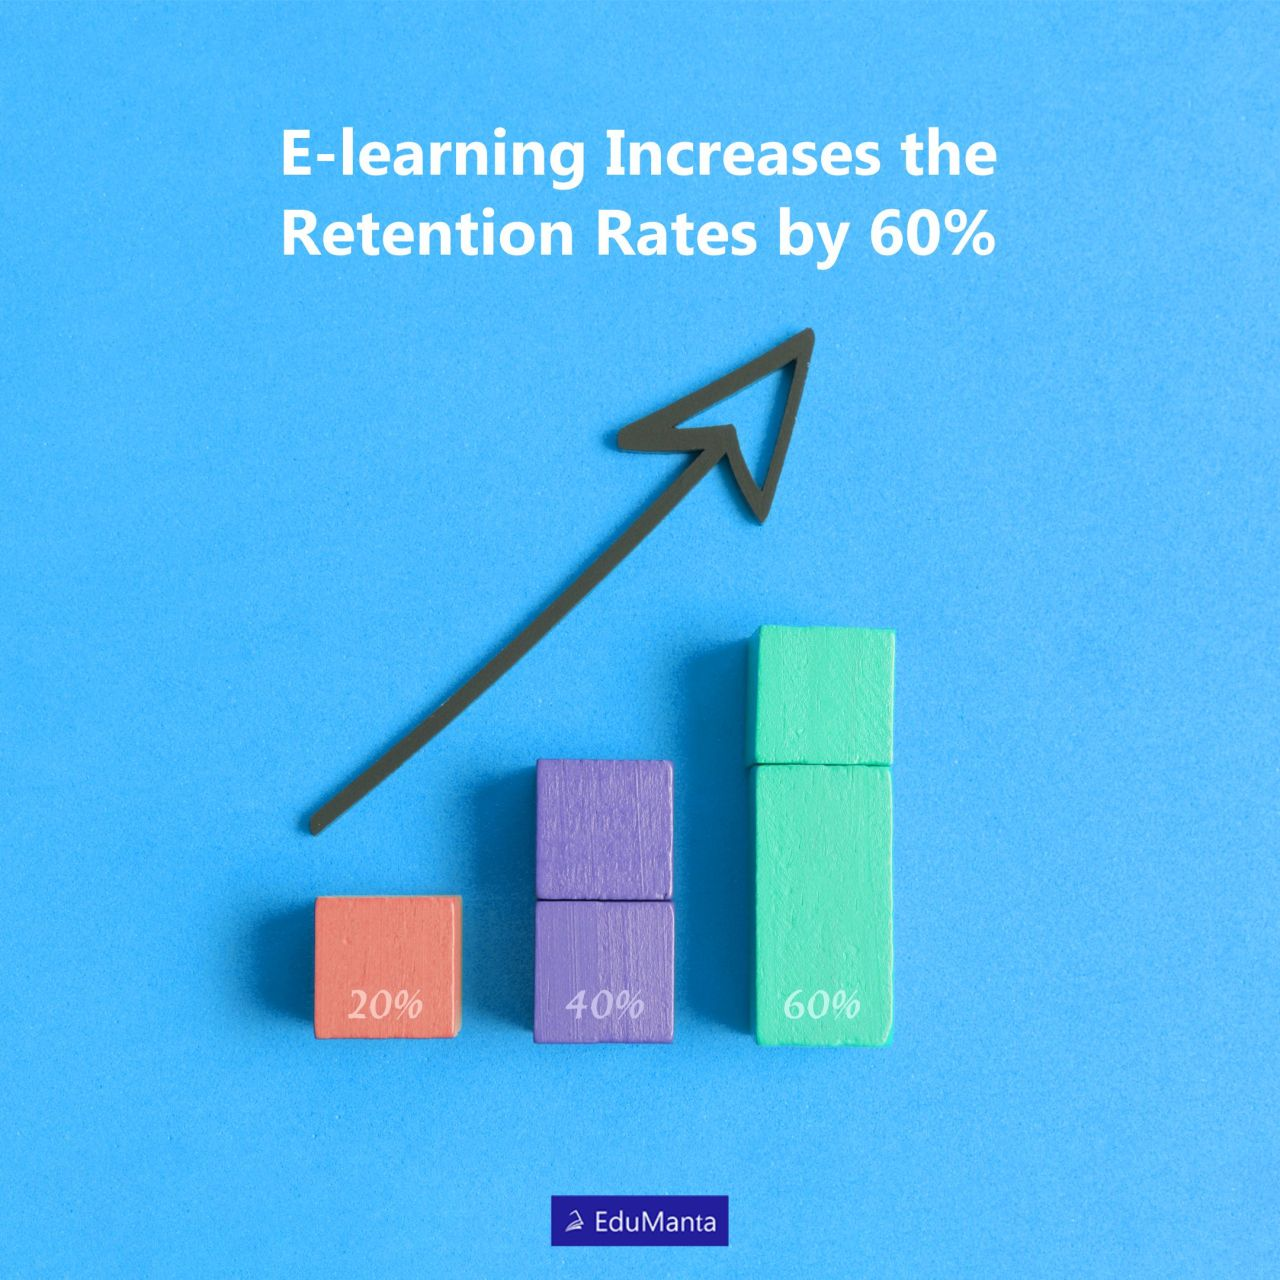 The Research Institute of America concluded that e-learning boosts retention rates by 25 to 60 percent, compared to retention rates of 8 to 10 percent with traditional training. #facts#education#online#online education#online learning#elearn#elearning#edtech#onlineed#online courses#virtual classroom